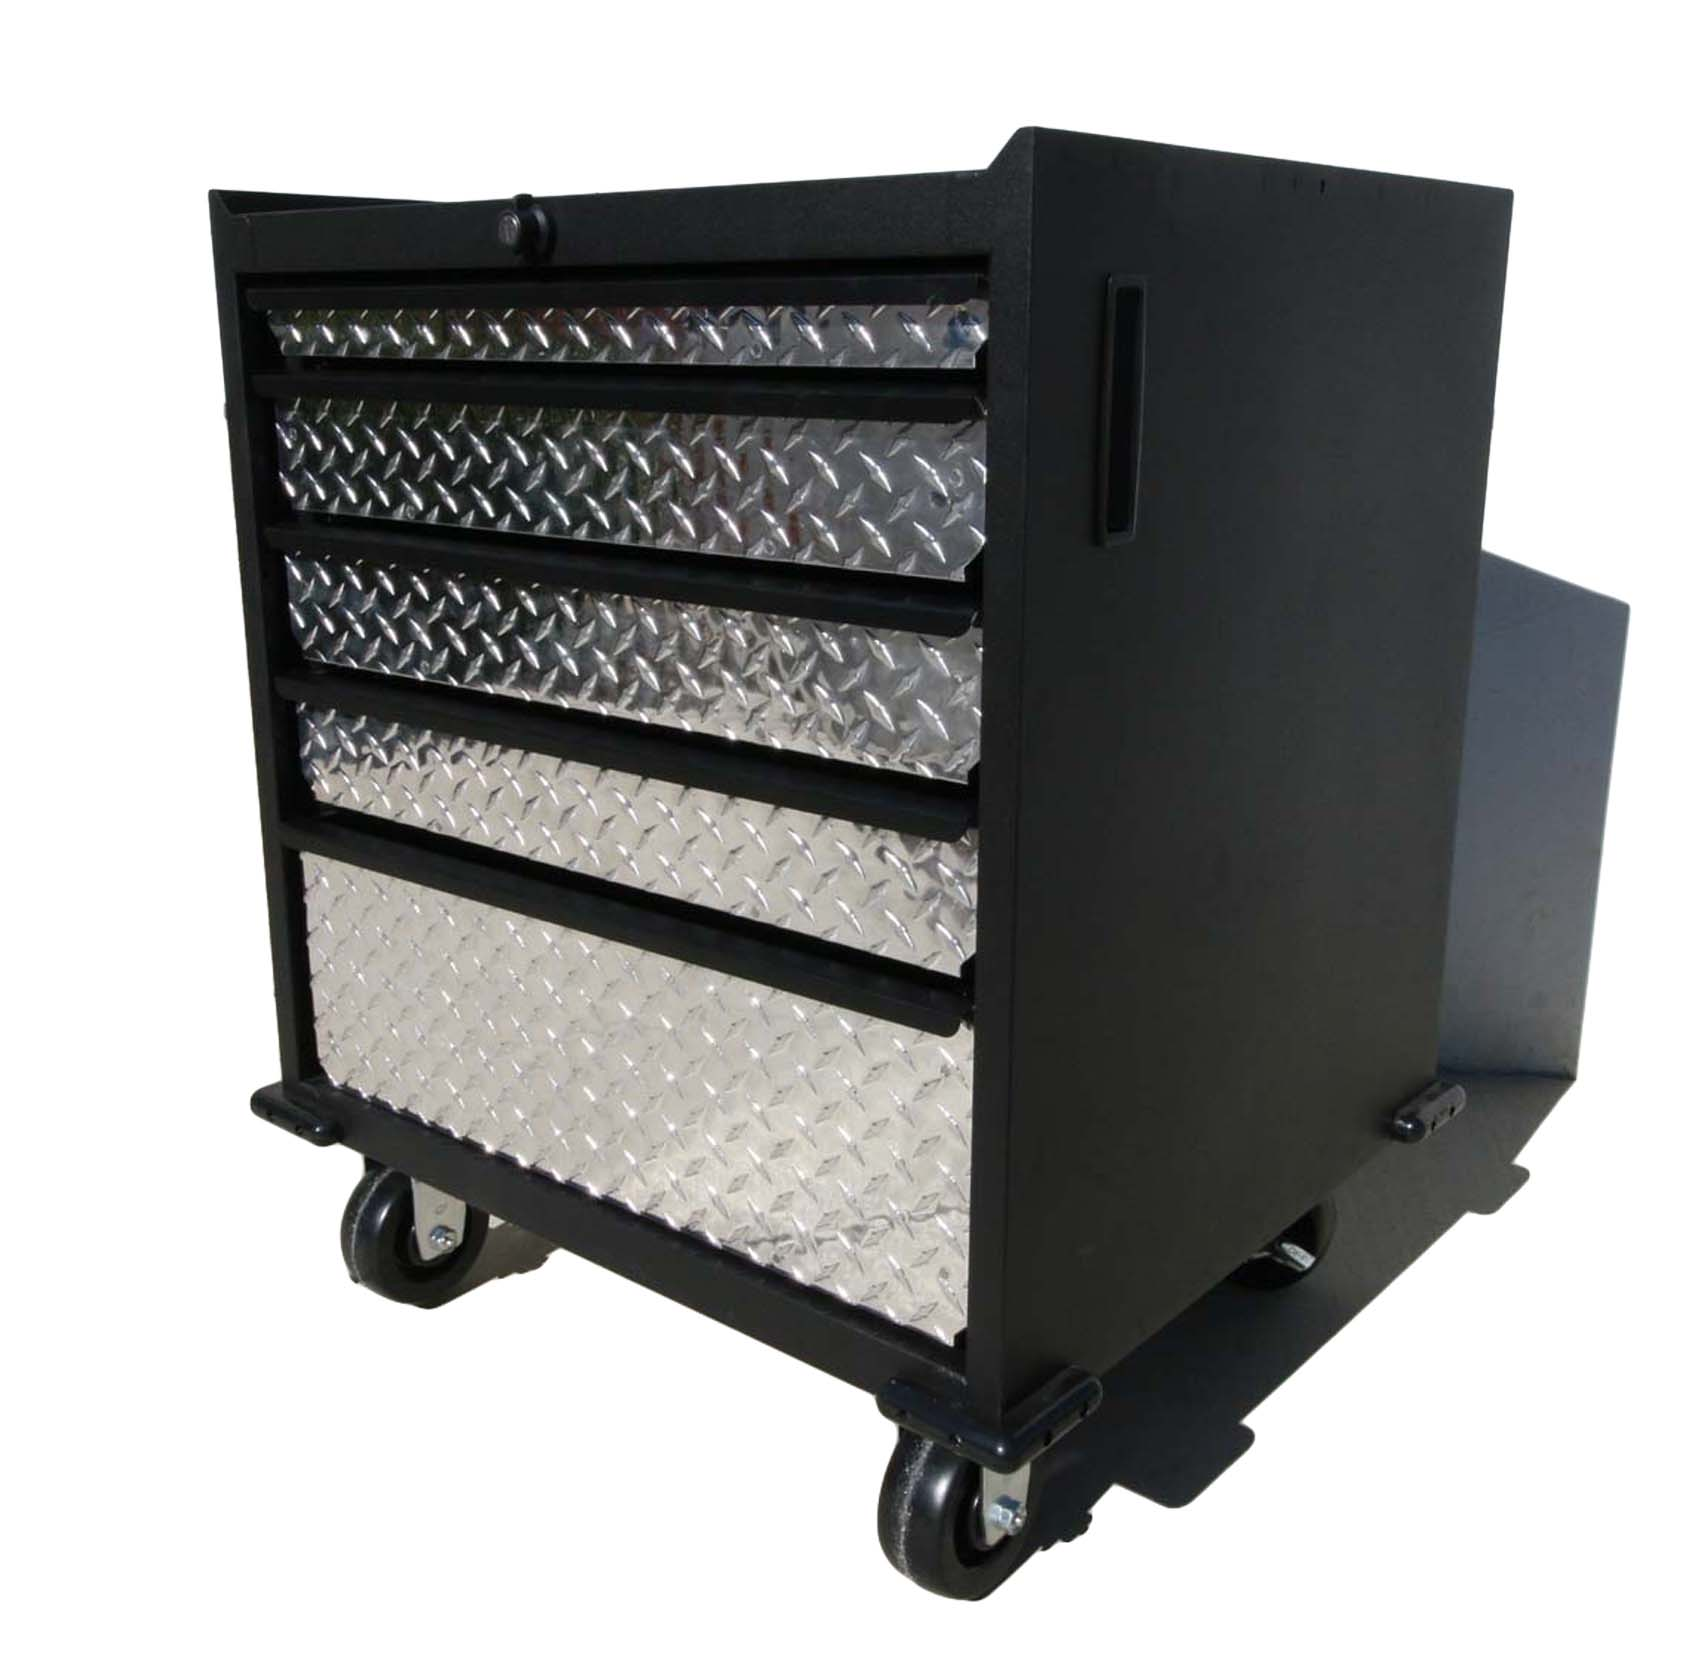 Base Cabinet with Diamond Plate Drawers, casters and lock